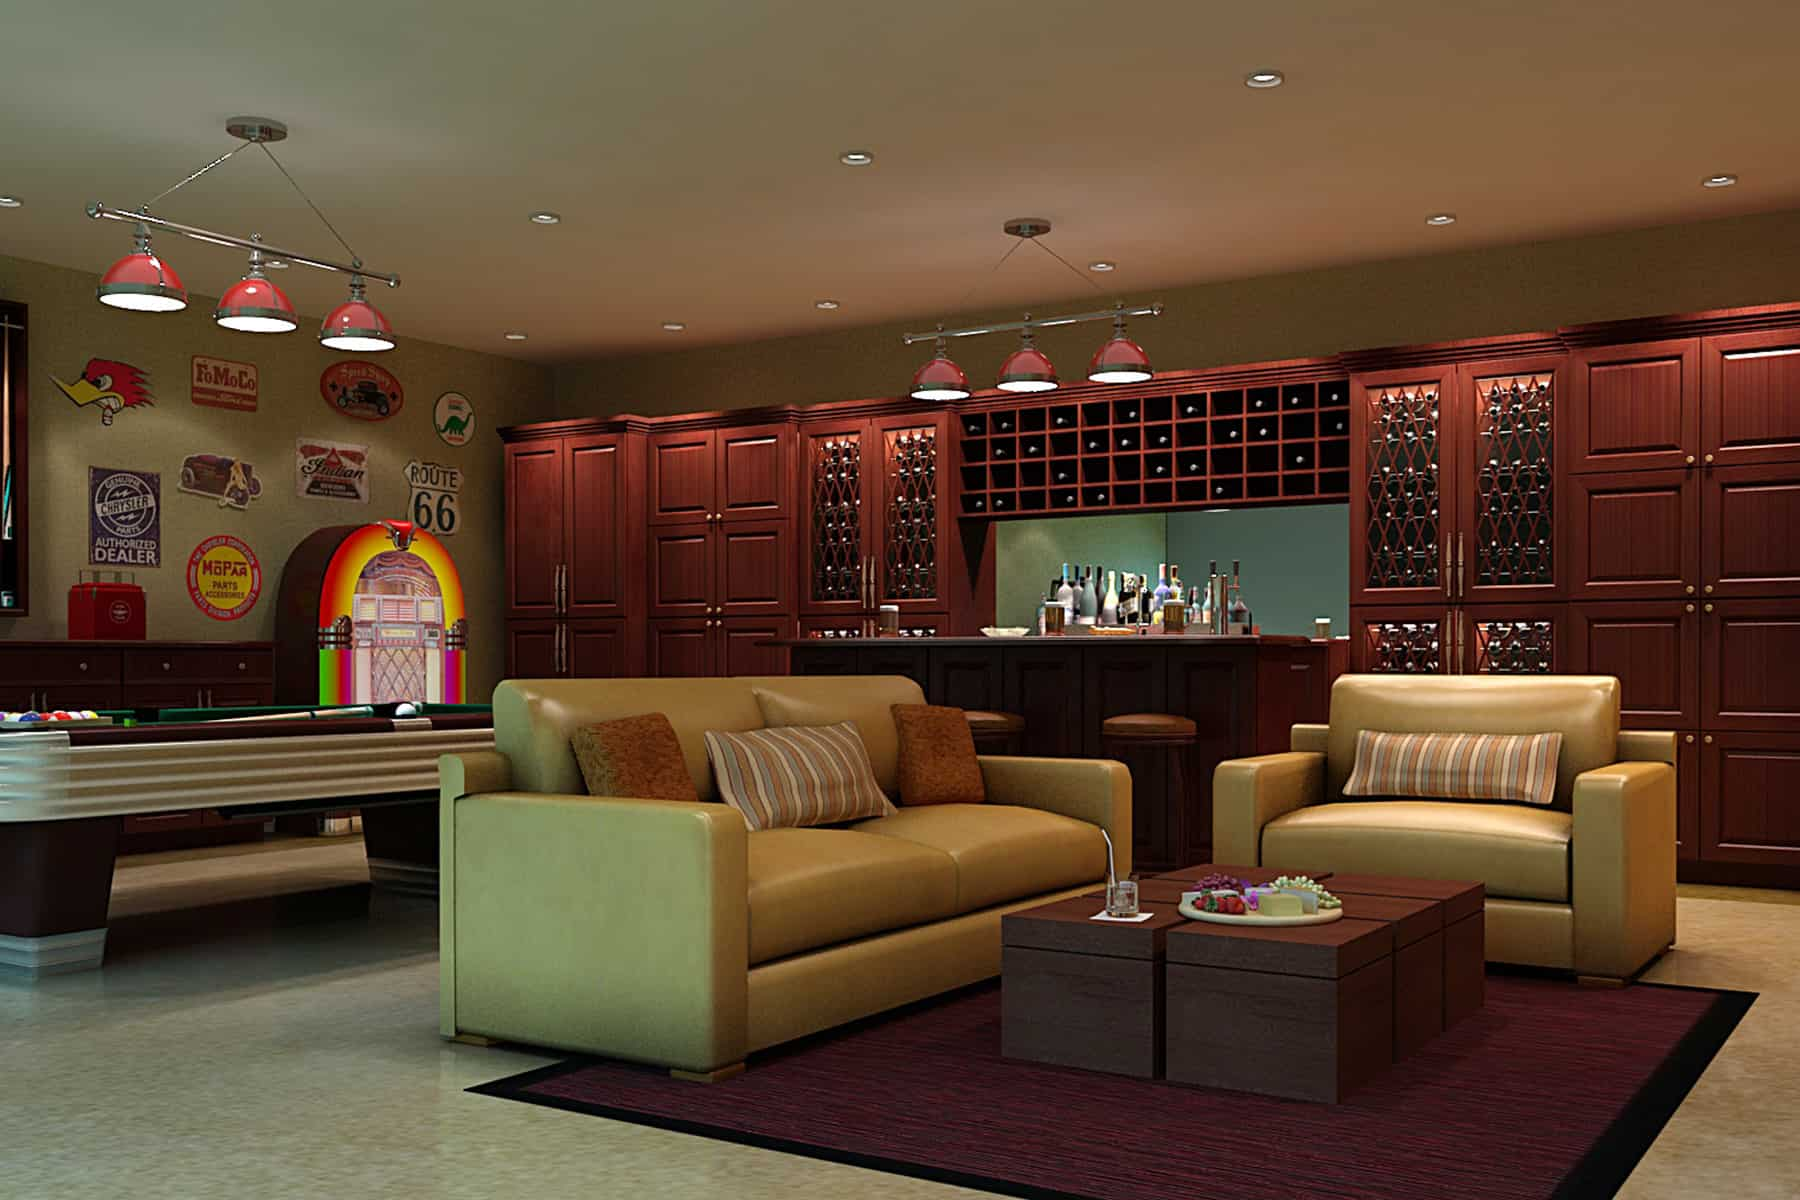 Large bar with a living space and a billiards pool. The bar set up looks so elegant. It matches the pendant lights.